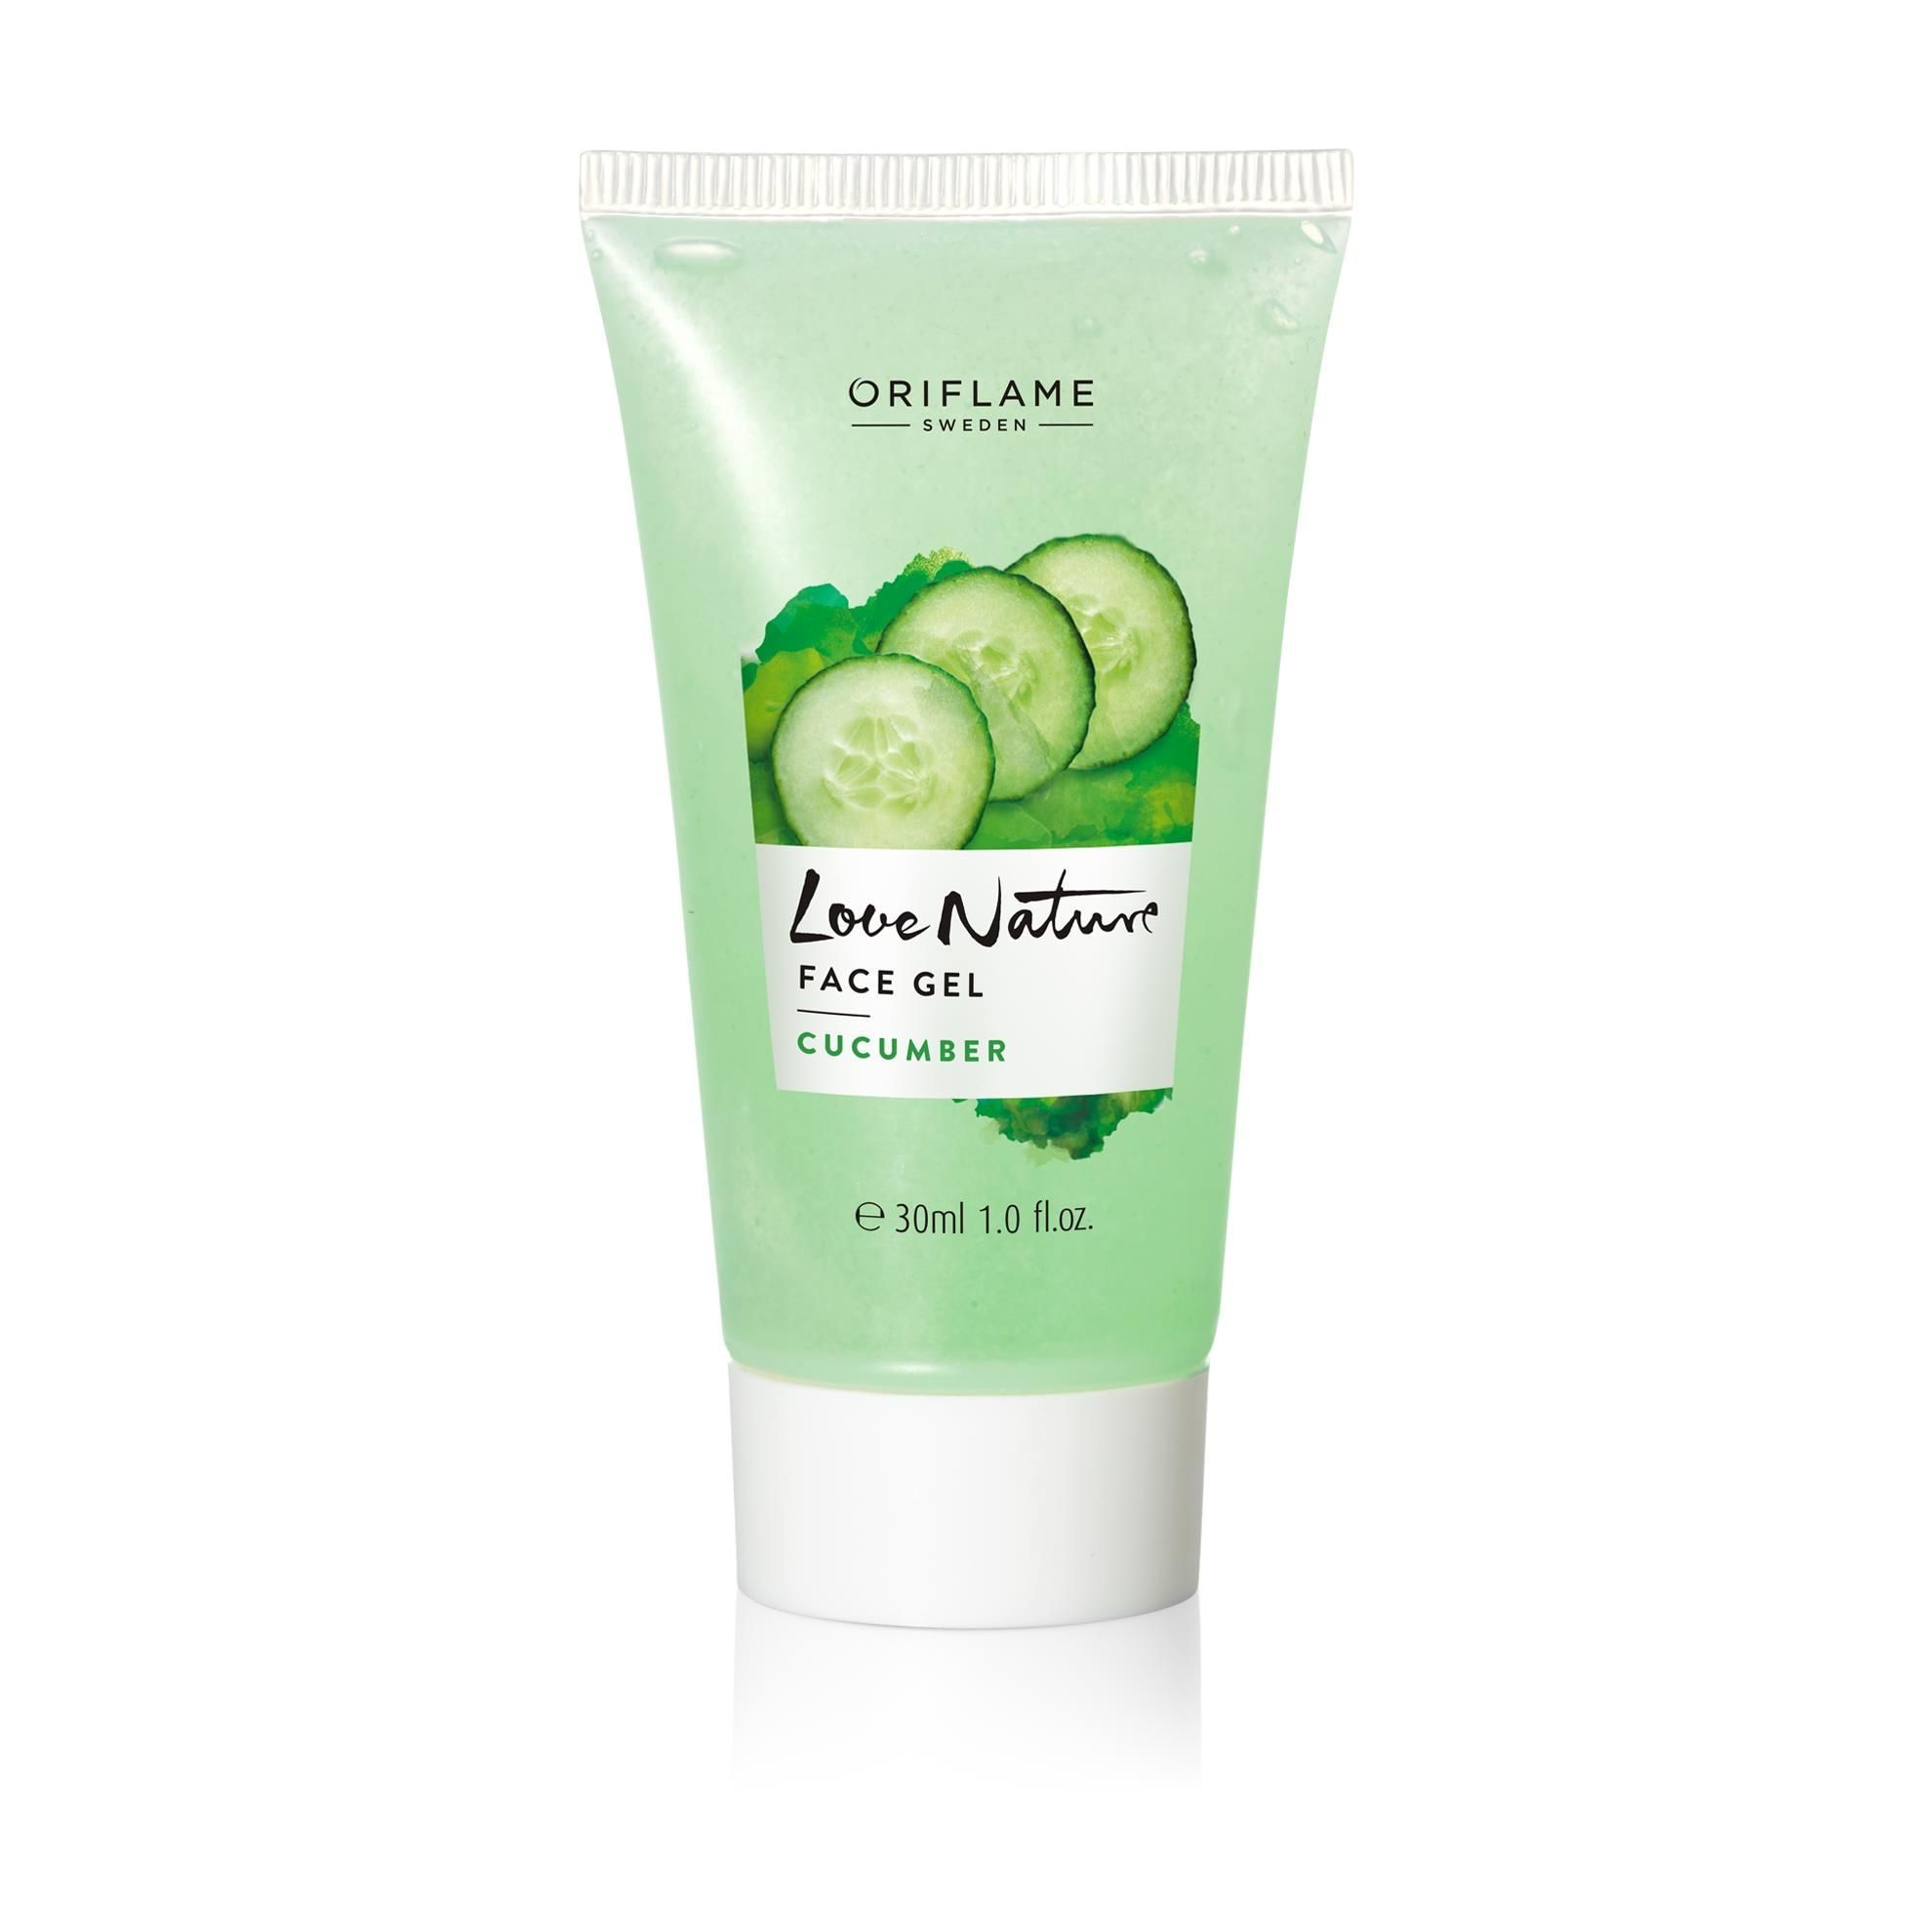 Oriflame Face Gel Cucumber Sale In Pakistan Online Shopping In Pakistan Cucumber Face Mask Cucumber For Face Skin Cleanser Products